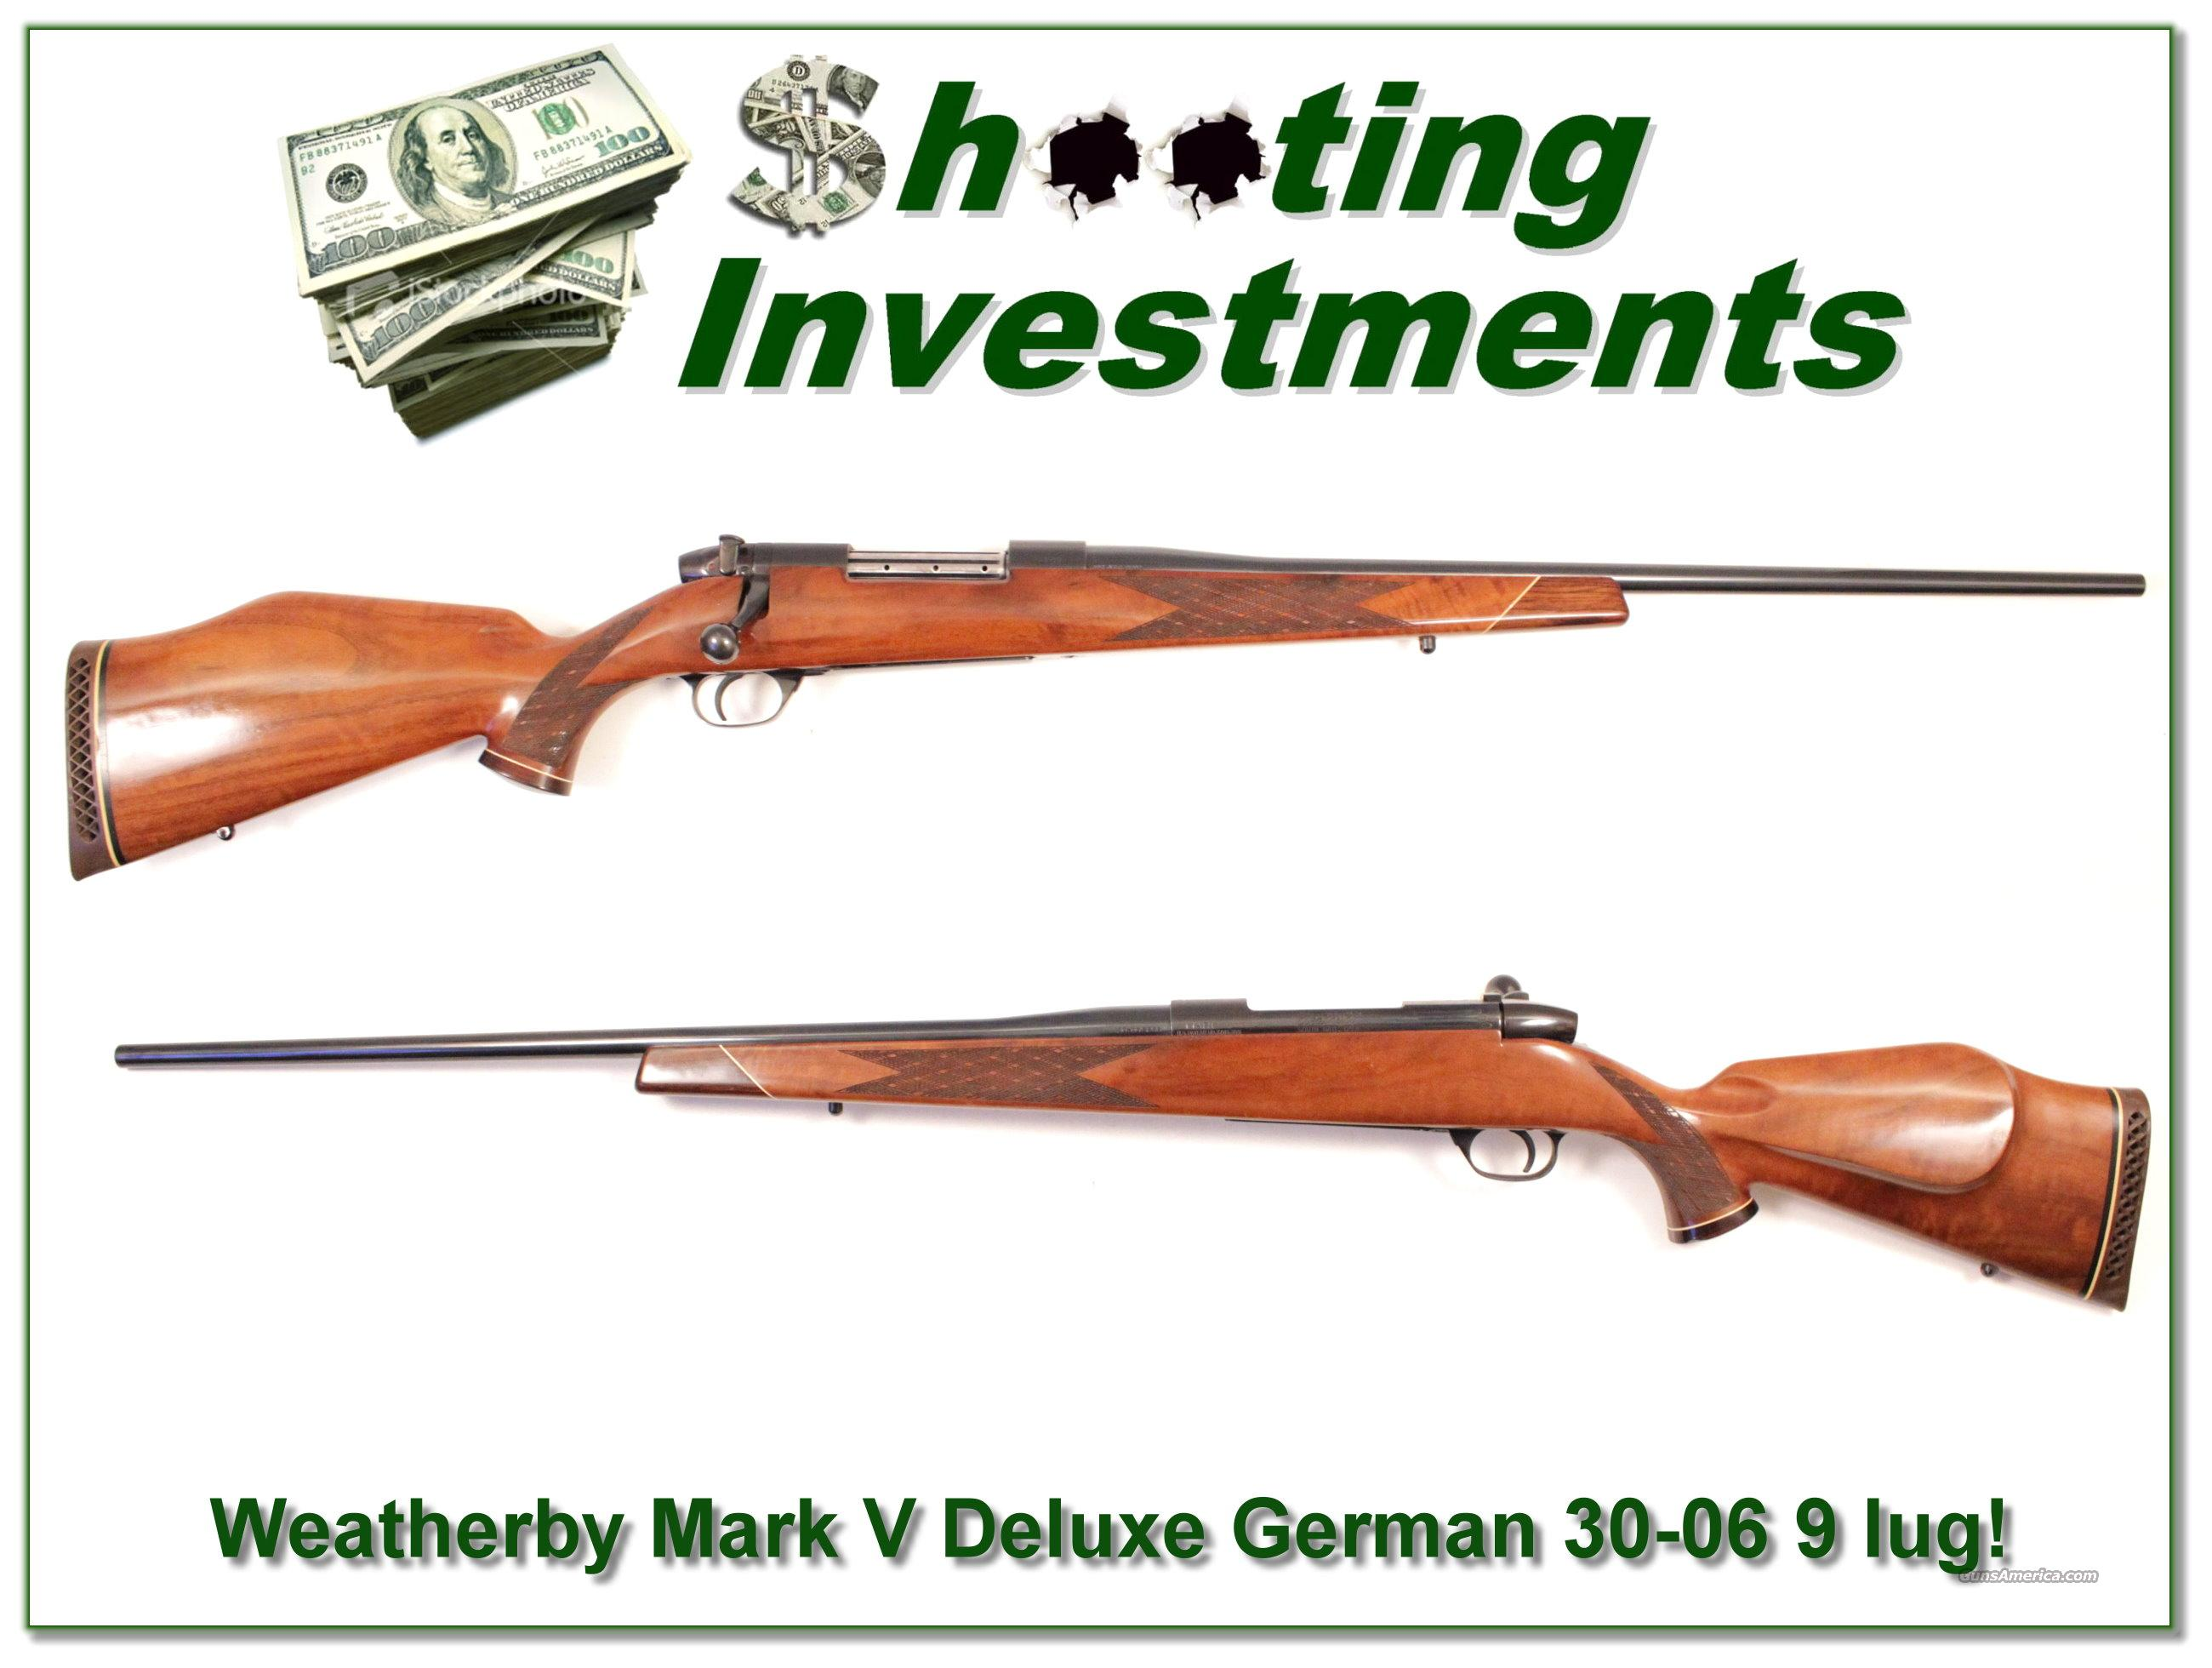 Weatherby Mark V Deluxe 30-06 German 9 Lug!  Guns > Rifles > Weatherby Rifles > Sporting